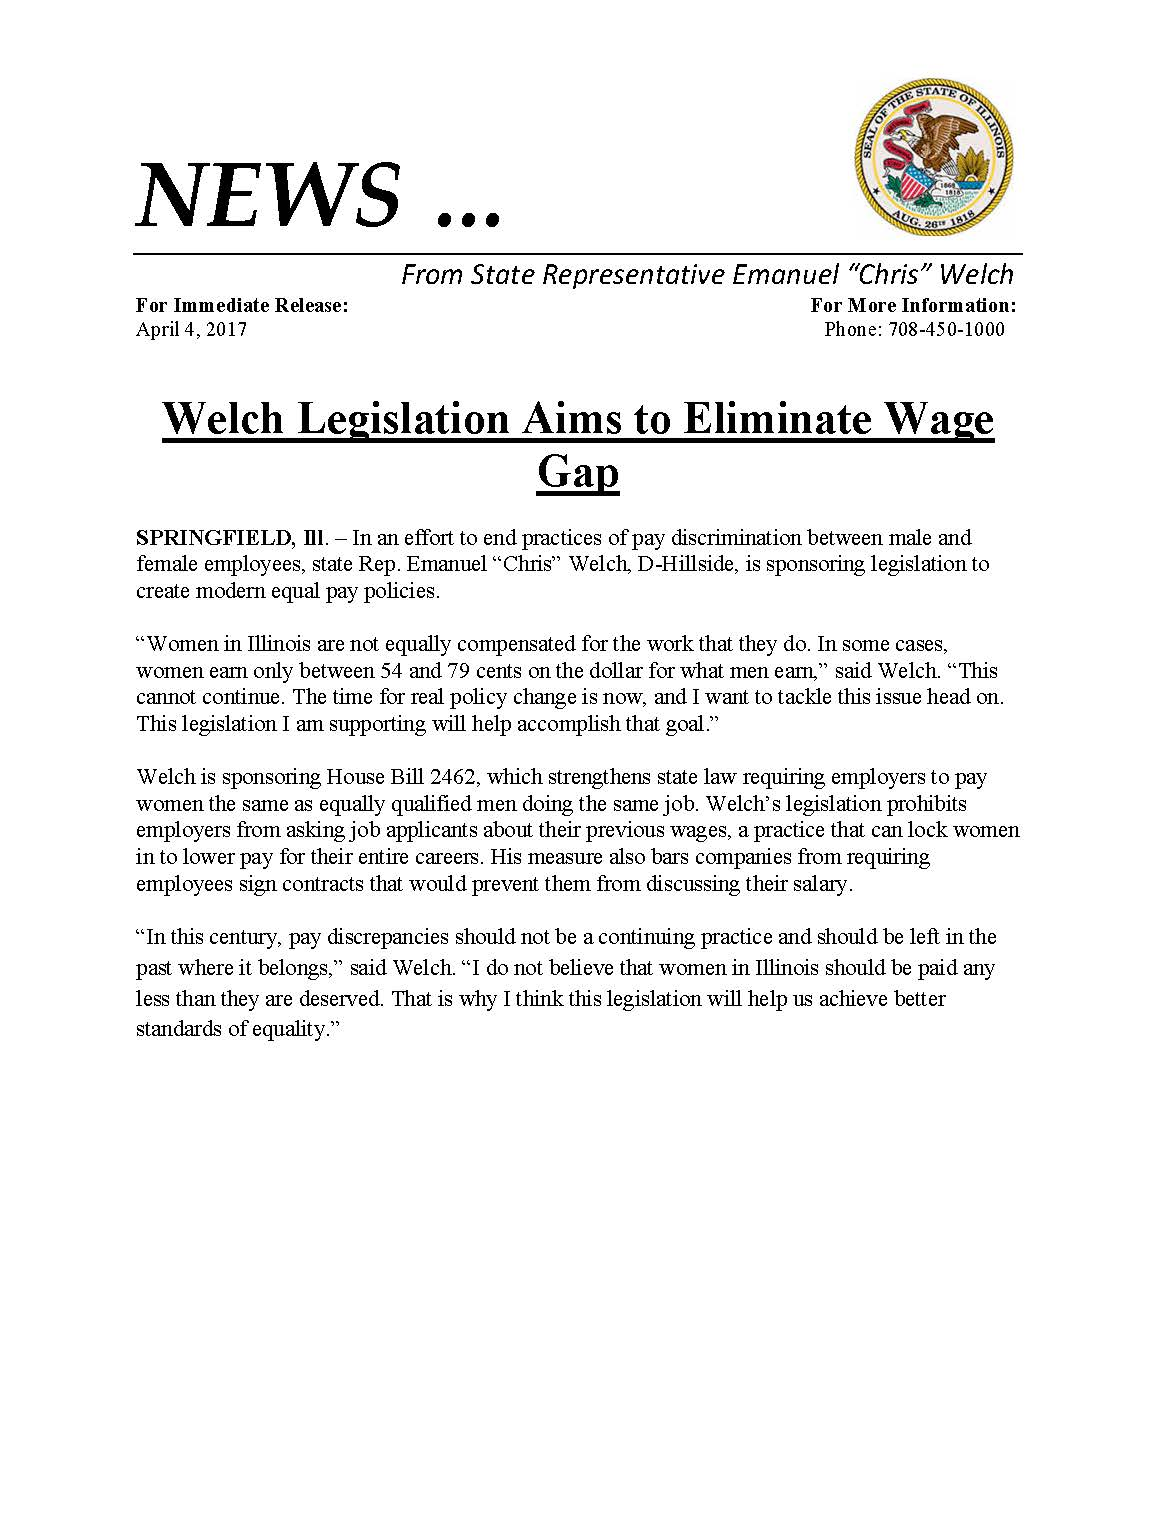 Welch Legislation Aims to Eliminate Wage Gap  (April 4, 2017)